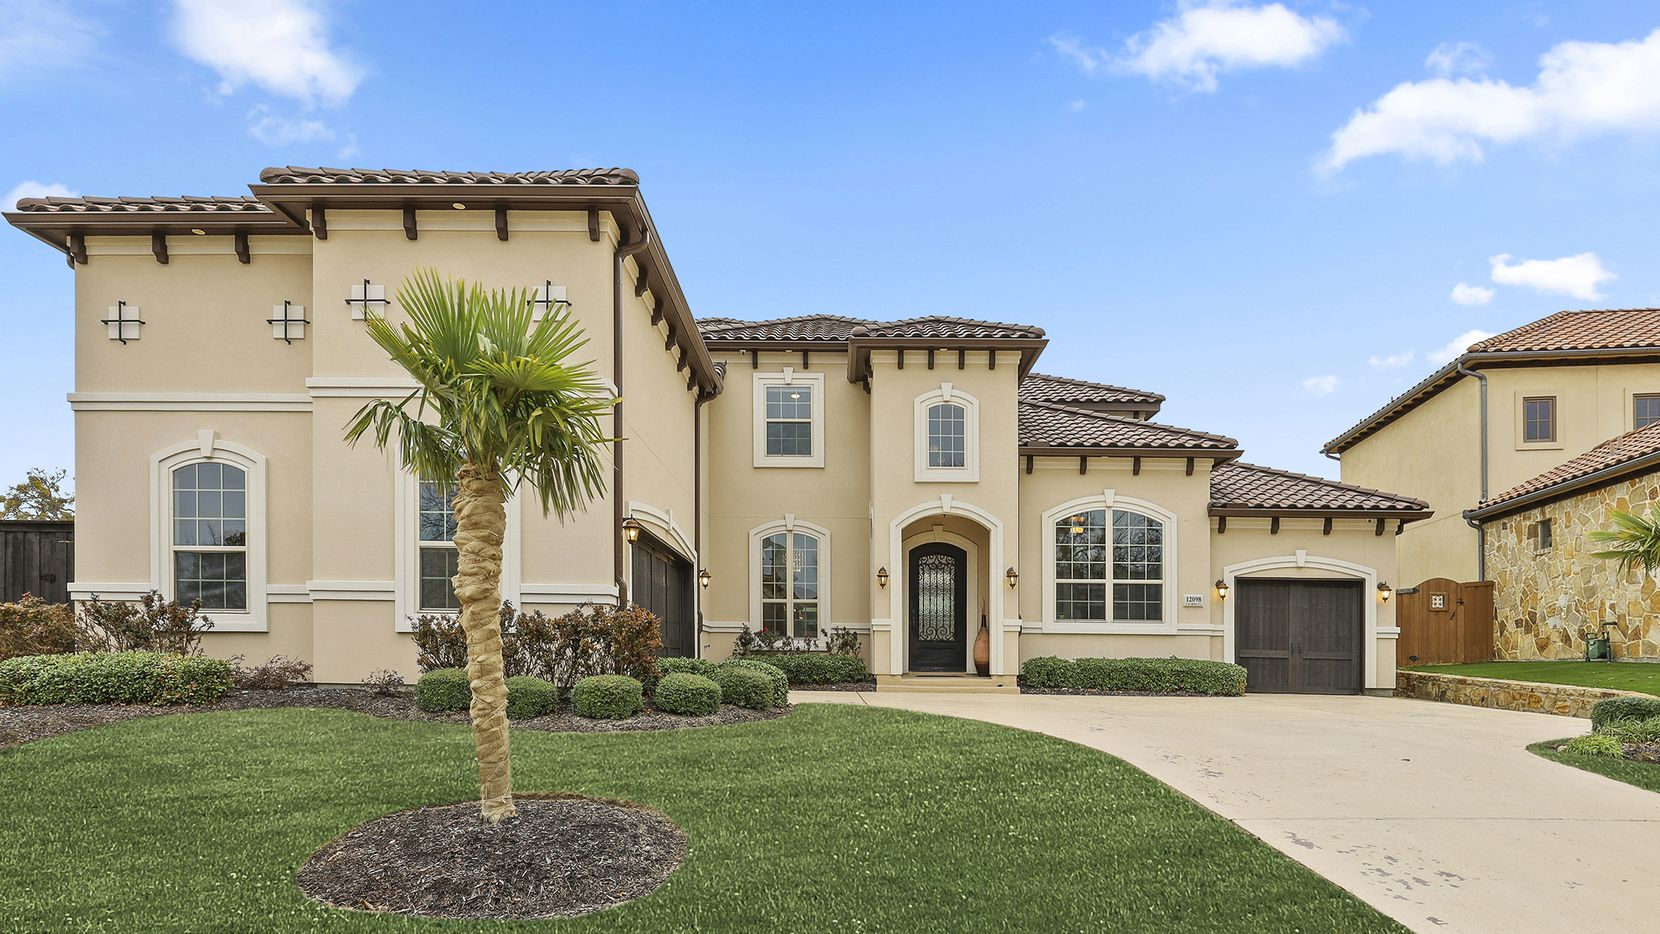 The Toll Brothers custom residence at 12098 Via Bello Court in gated Latera has five bedrooms and is listed at $1,050,000.